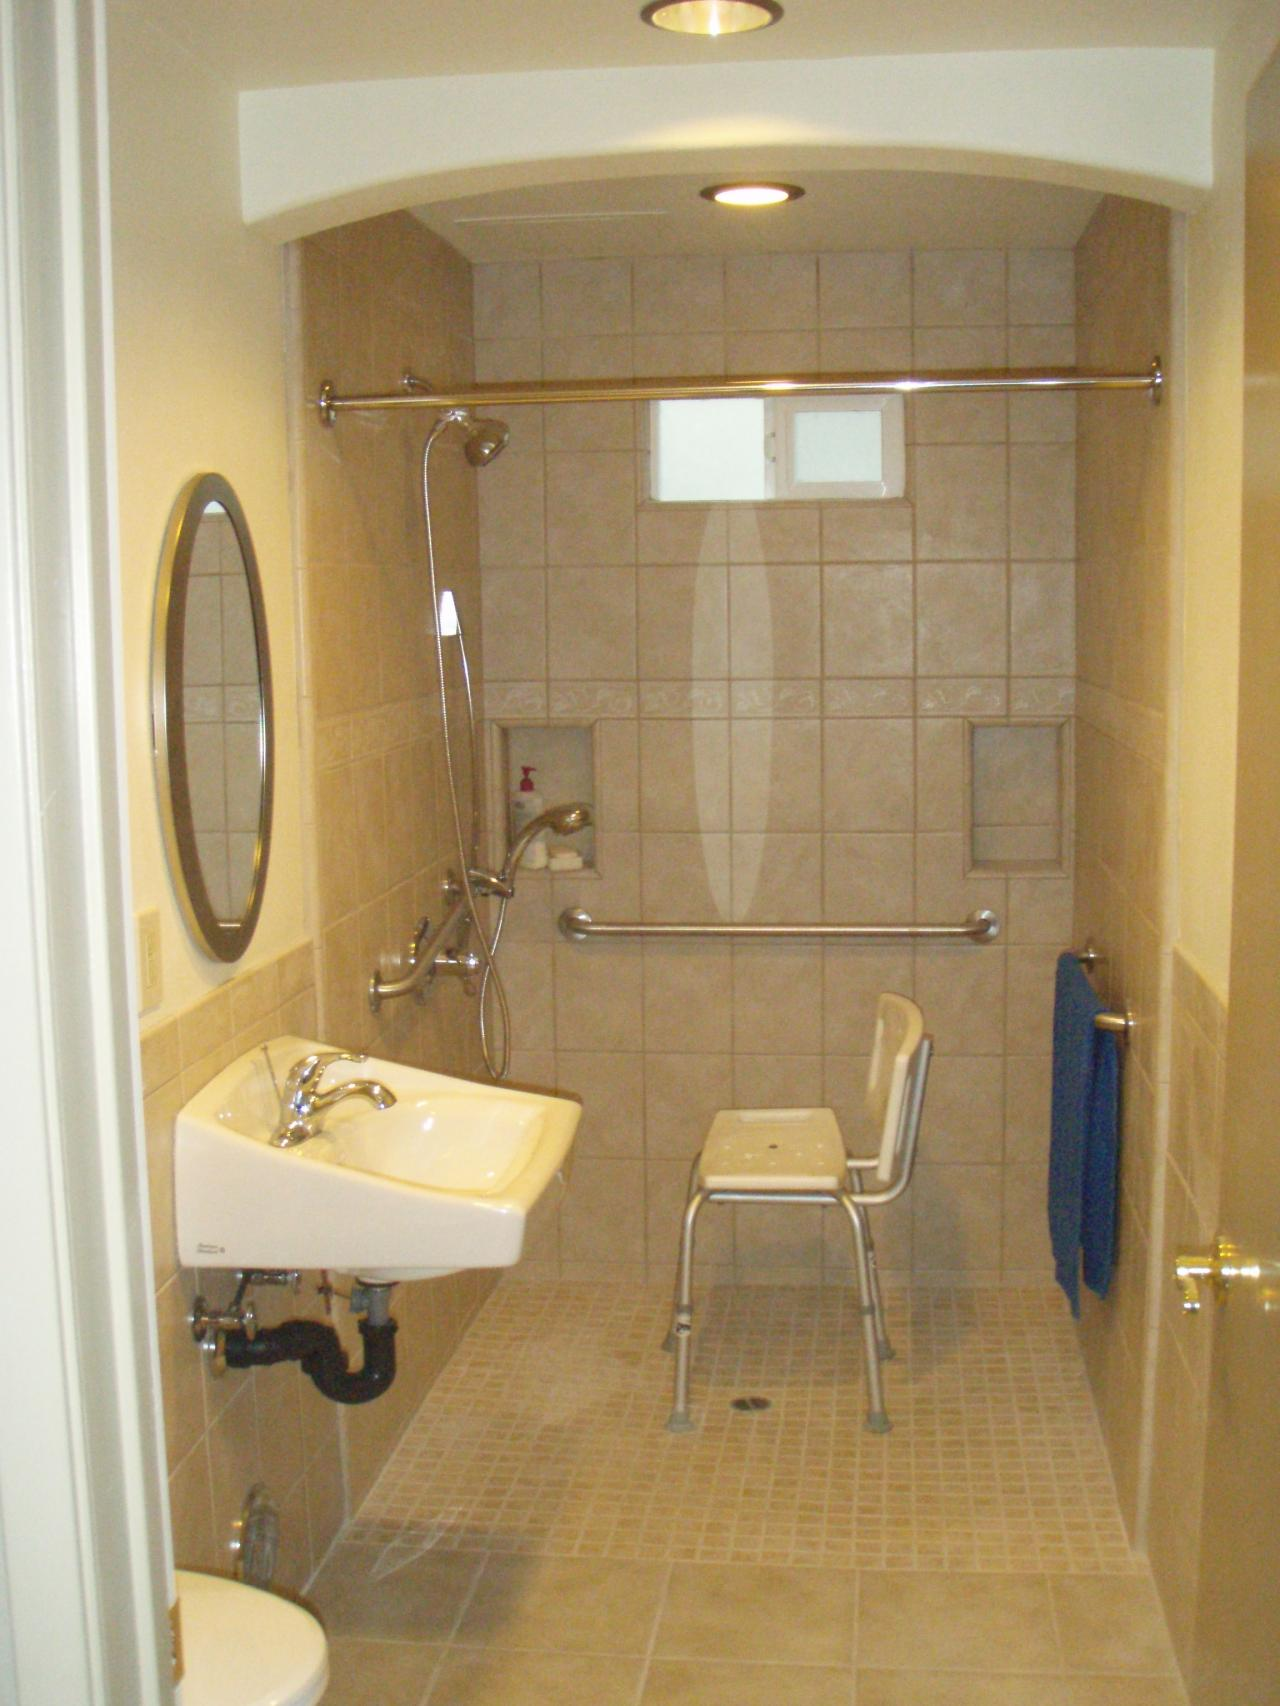 Prodan construction handicapped bathroom ms hayashi for Wheelchair accessible bathroom designs